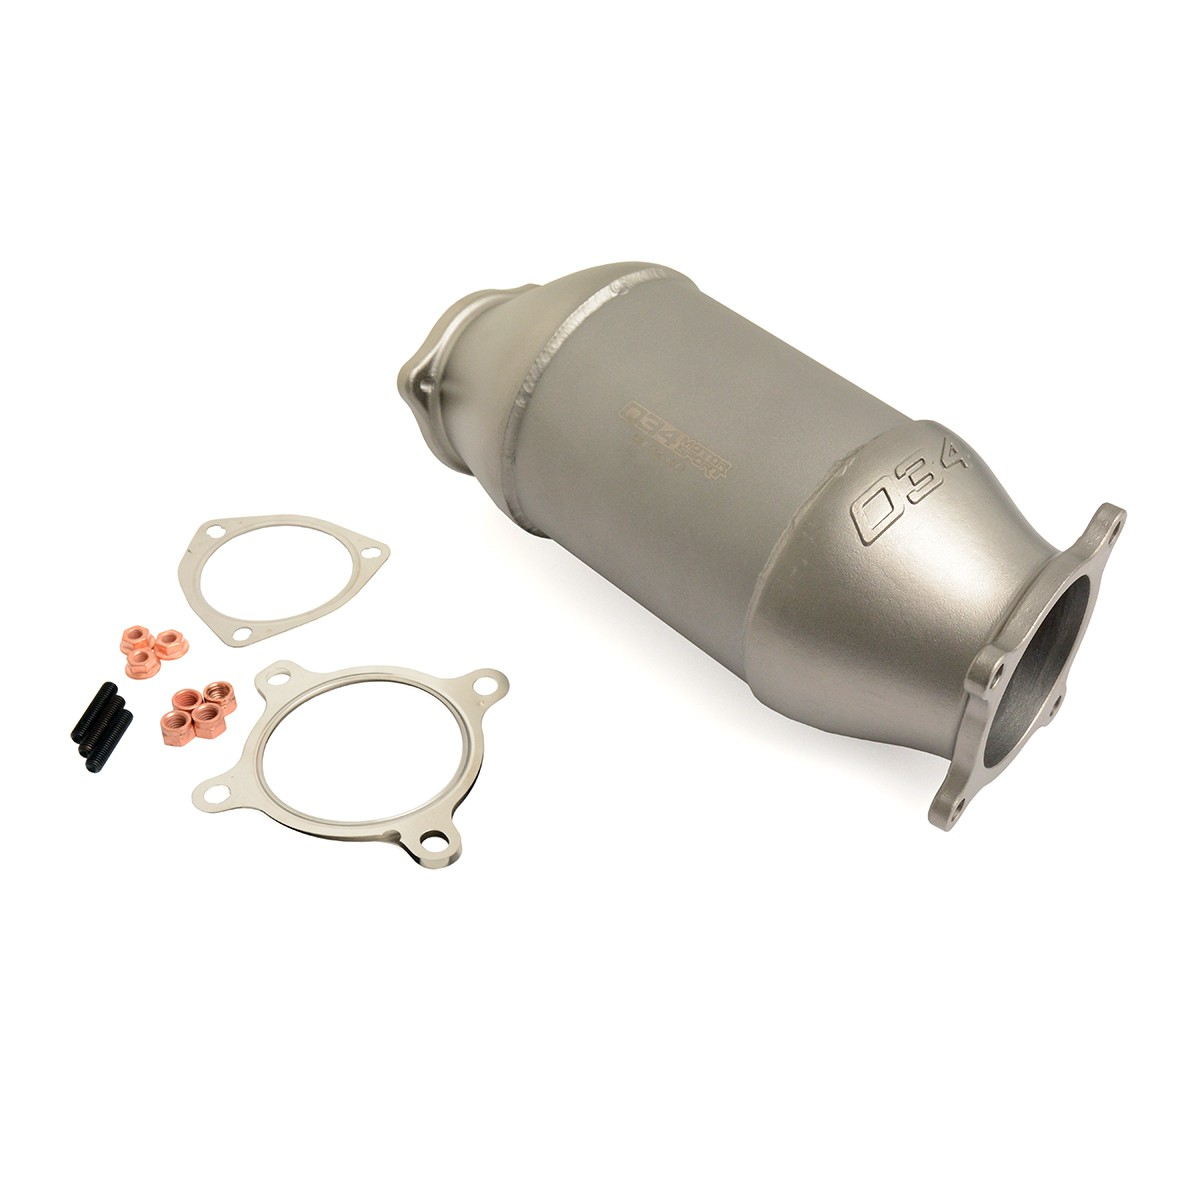 034 Motorsport Cast Racing Catalyst For B9 Audi A4/A5/Allroad 2.0 TFSI